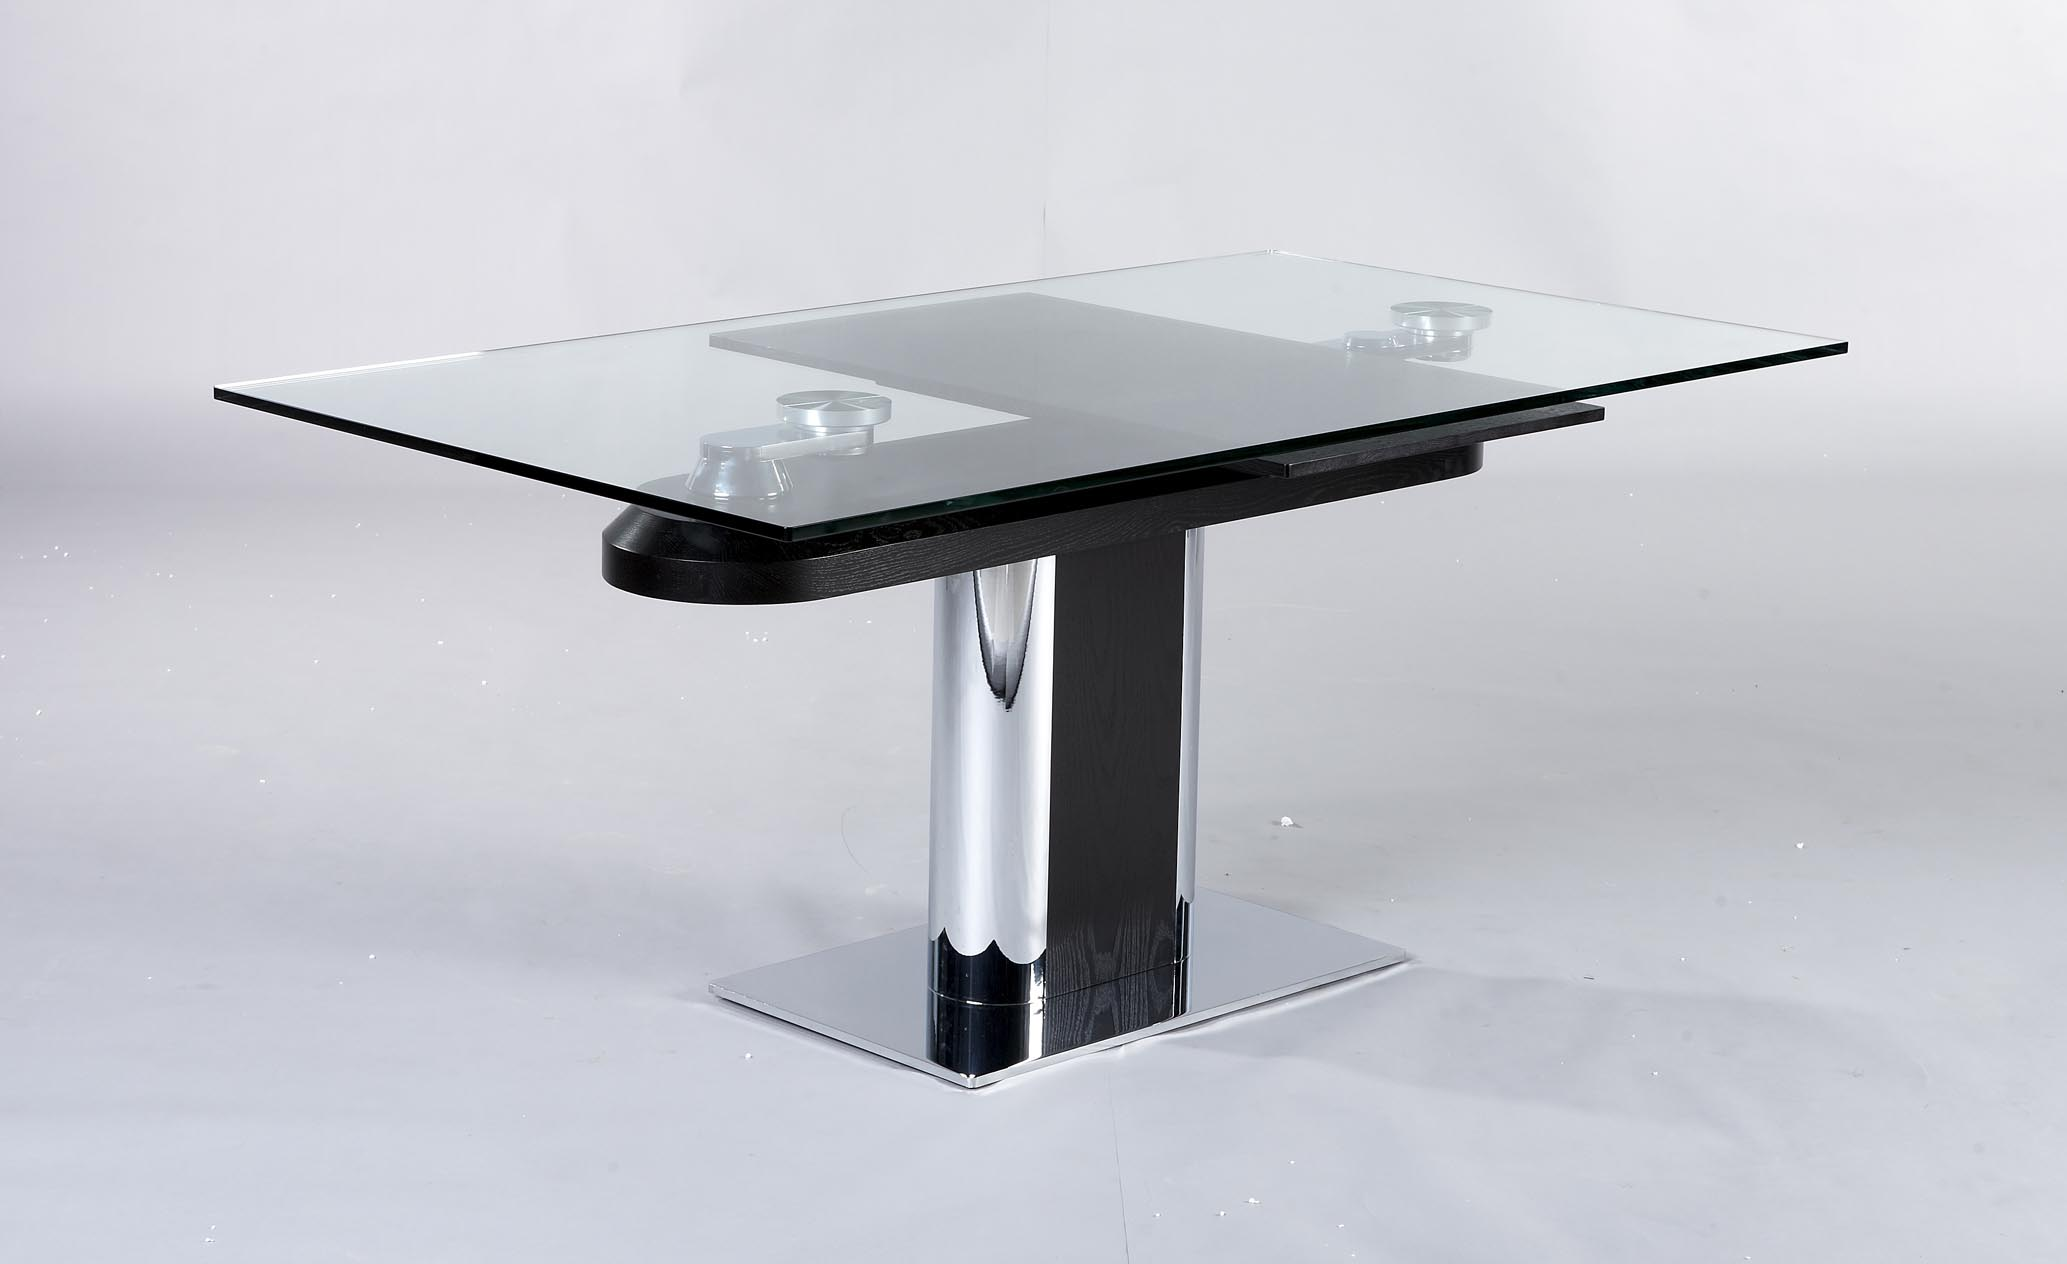 Table salle manger design en verre avec rallonges for Table en verre extensible design